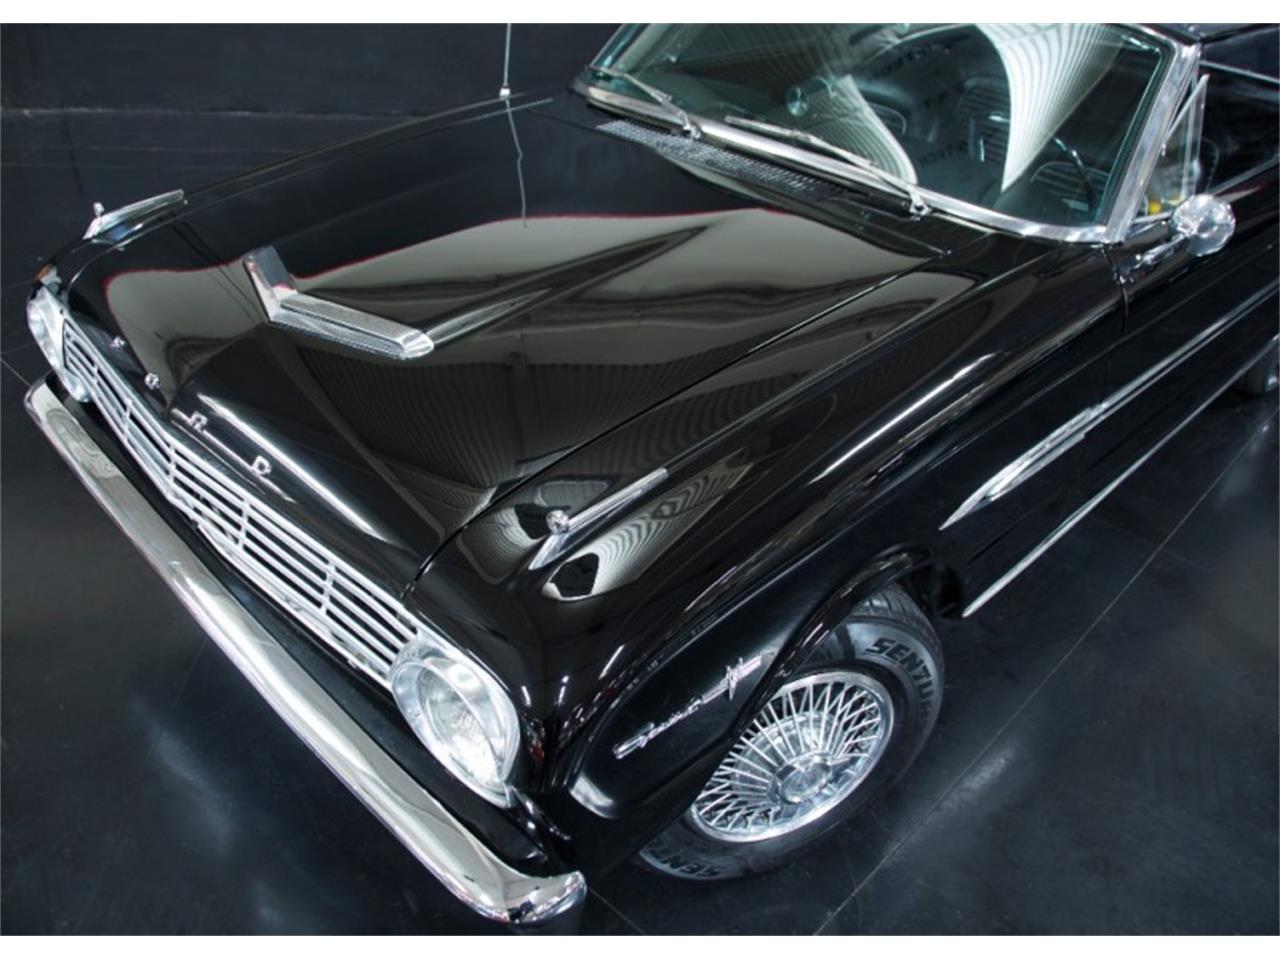 1963 Ford Falcon for sale in Milpitas, CA – photo 9